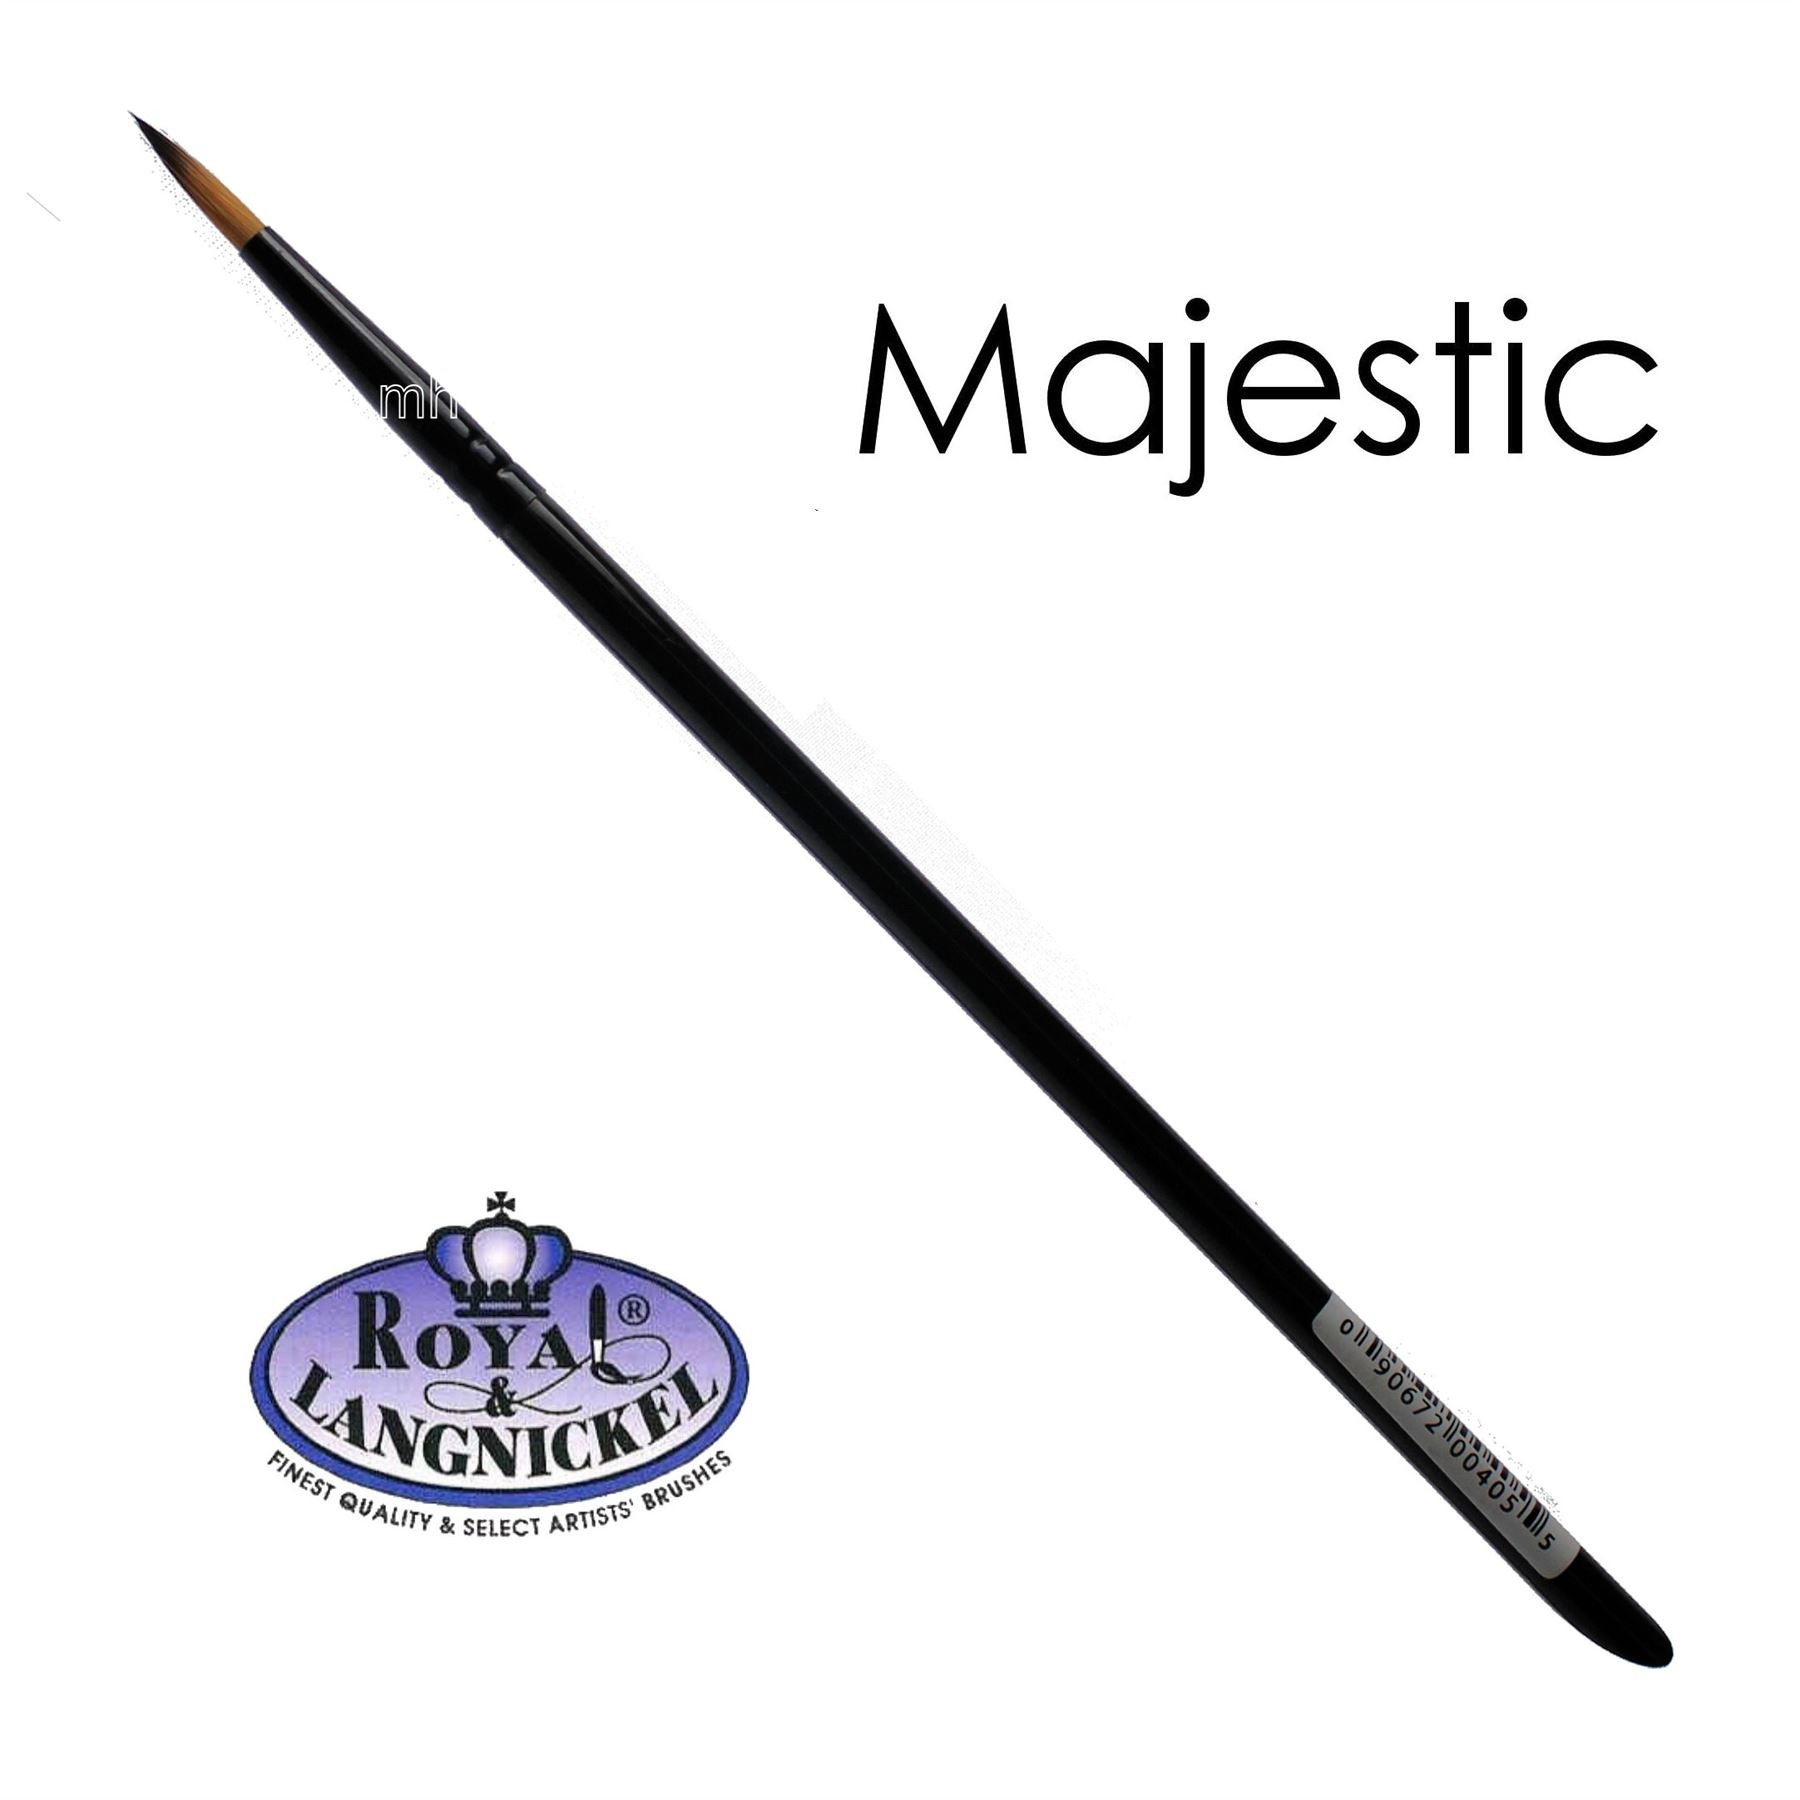 Royal & Langnickel Majestic Single Brush artists quality paint brushes